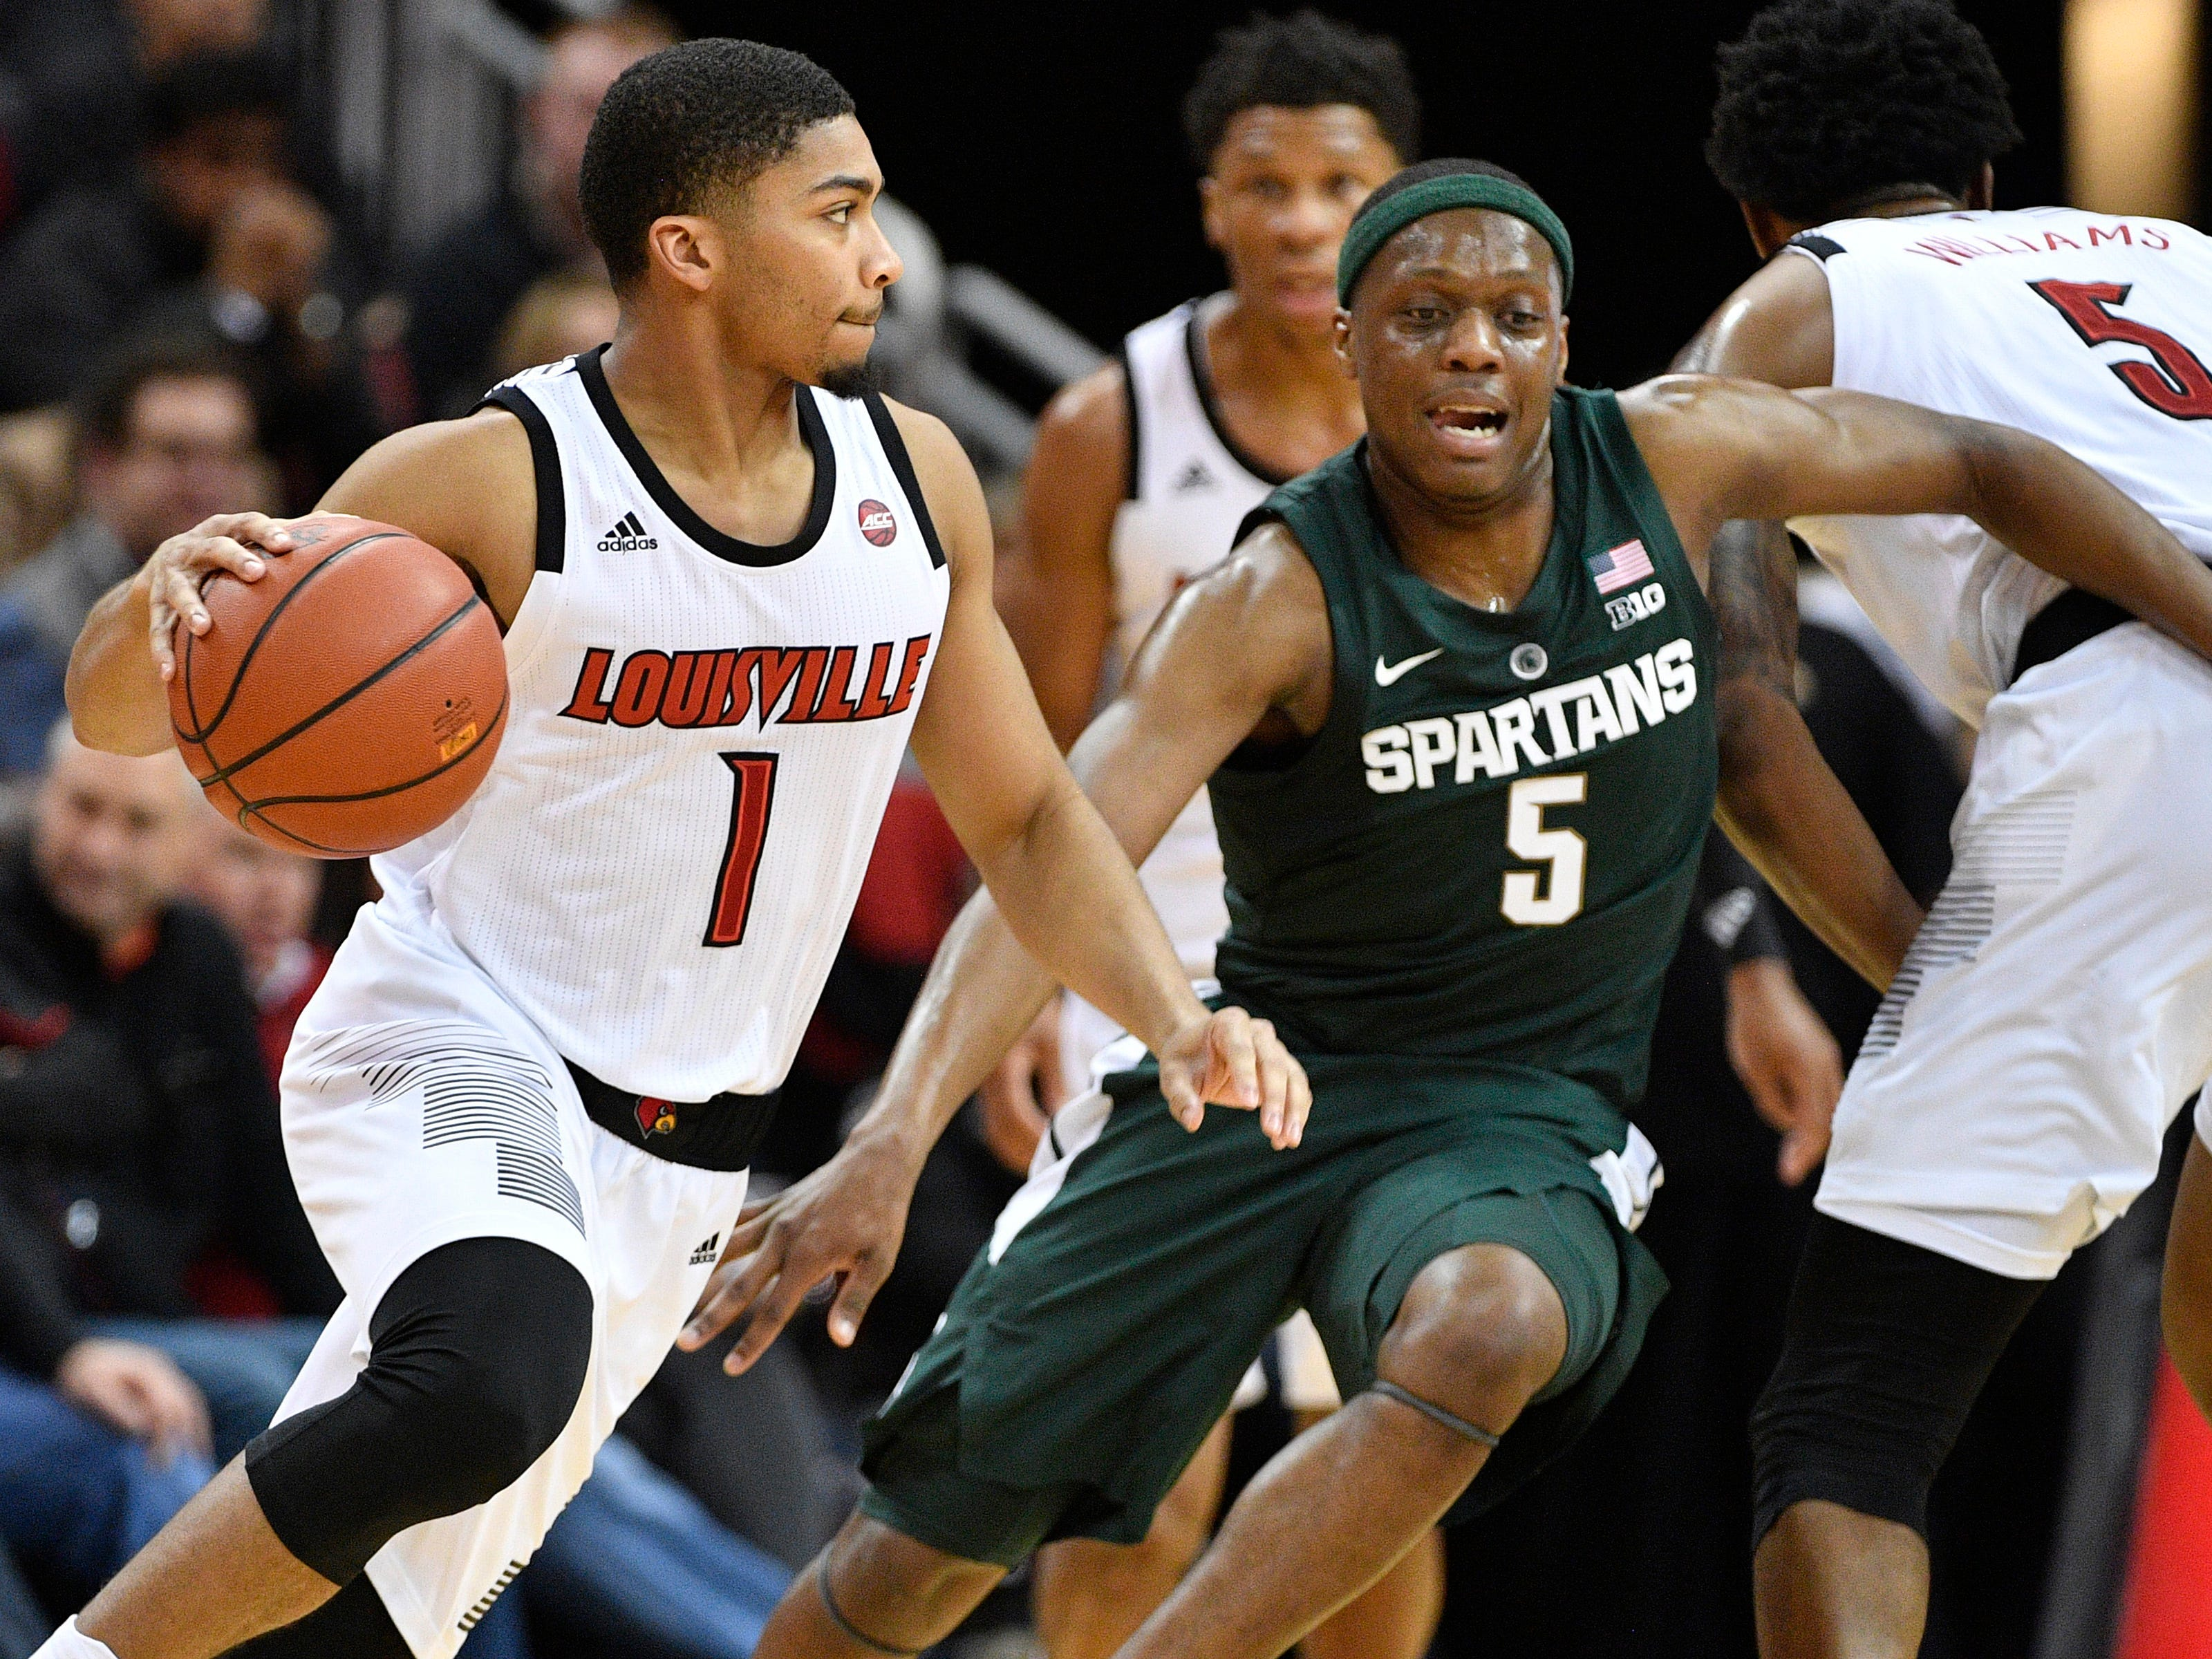 Louisville Cardinals guard Christen Cunningham (1) dribbles against Michigan State Spartans guard Cassius Winston (5) during the first half at KFC Yum! Center.